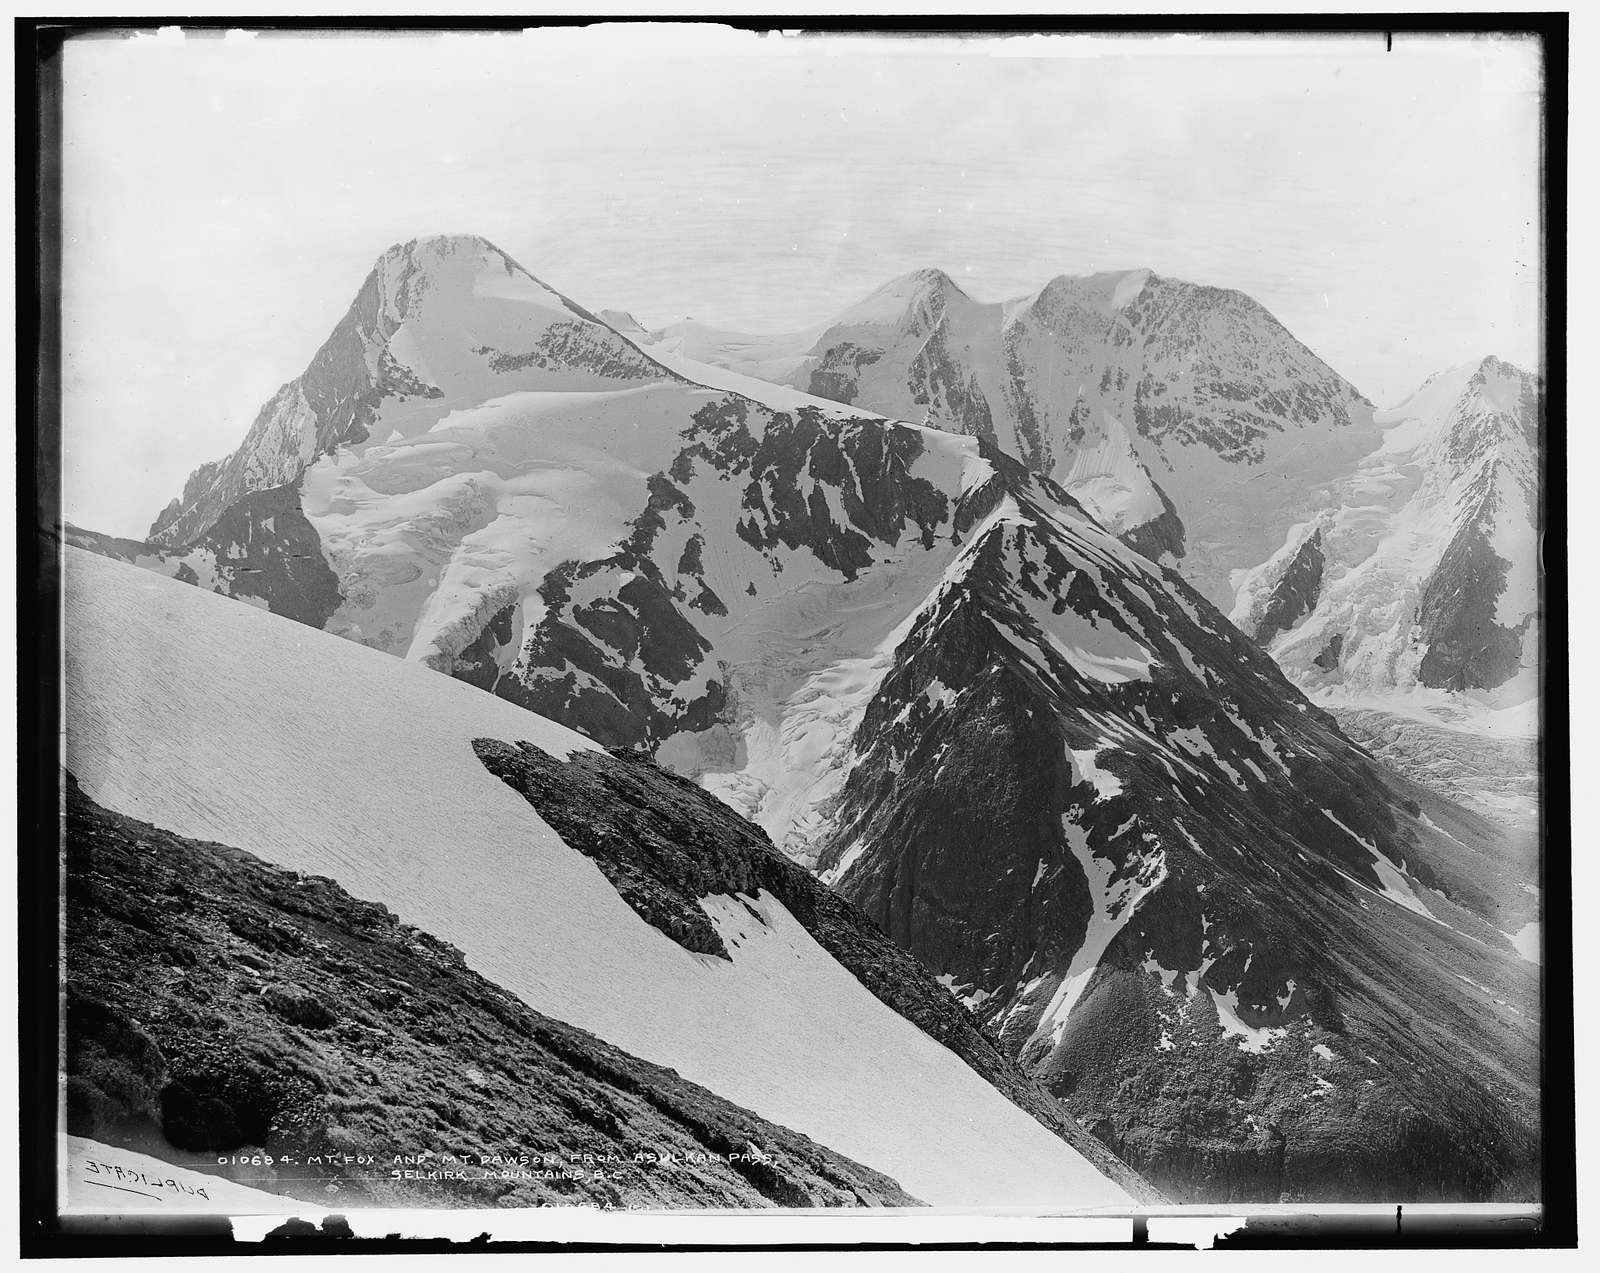 Mt. Fox and Mt. Dawson from Asulkan Pass, Selkirk Mountains, B.C